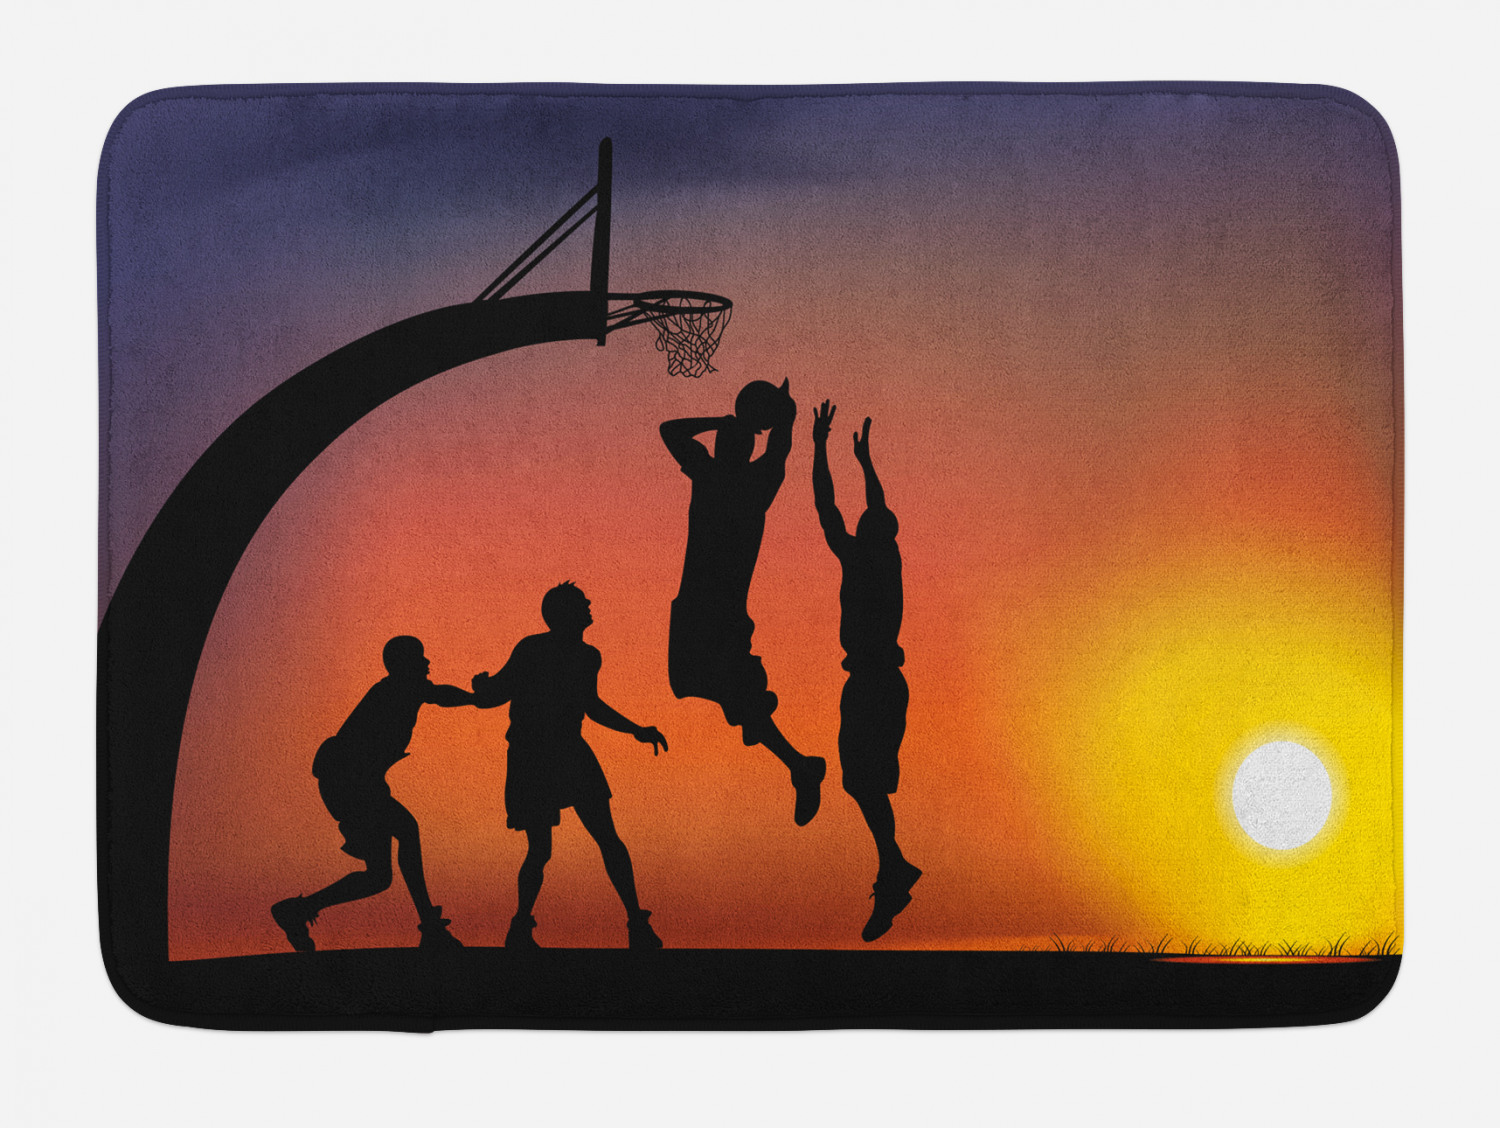 Teen Room Bath Mat Boys Play Basketball Non-Slip Plush Mat,